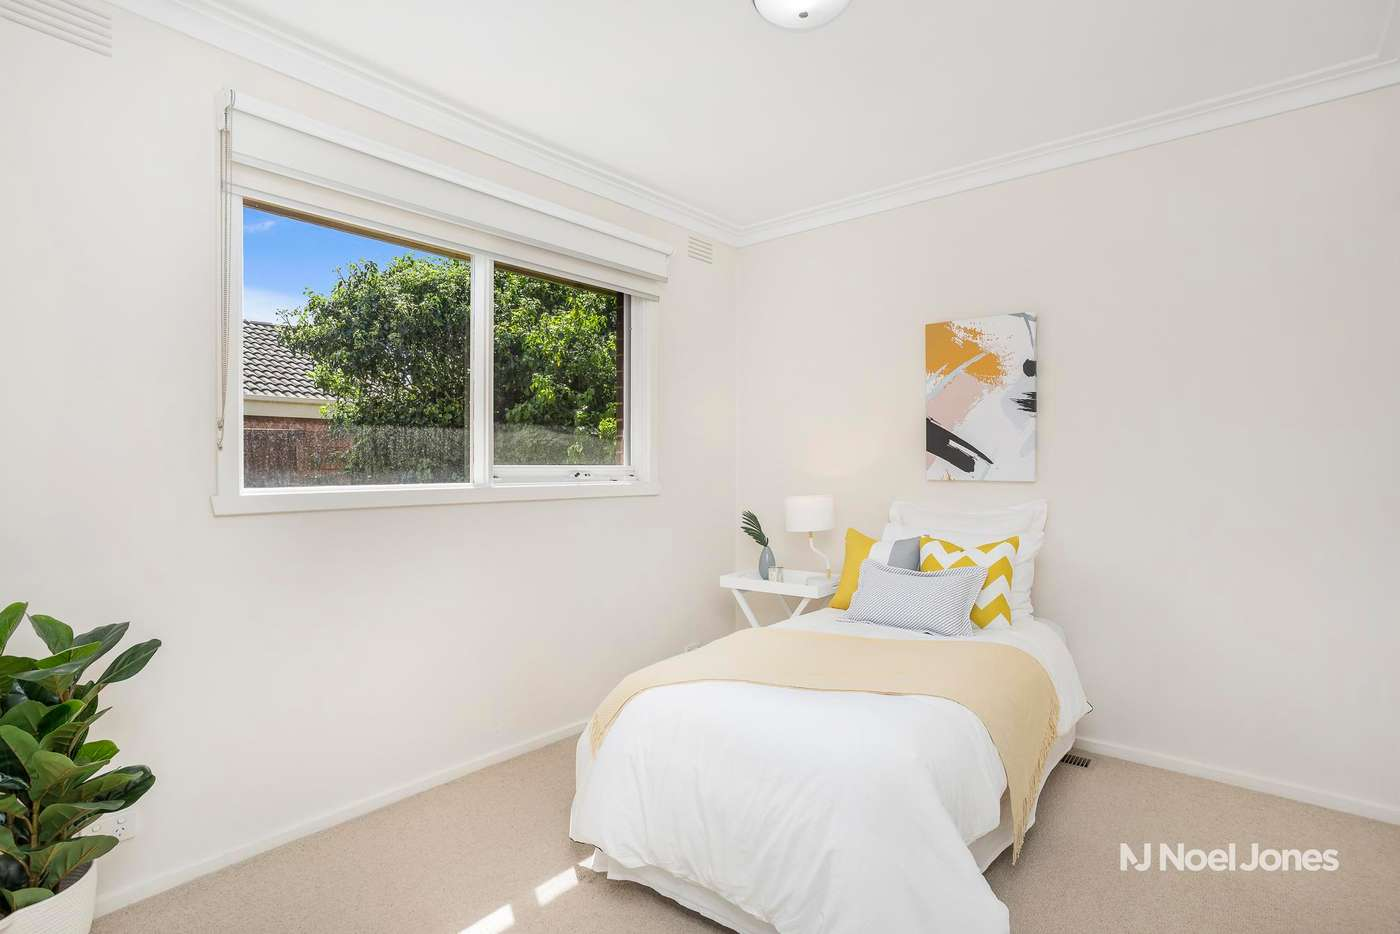 Sixth view of Homely unit listing, 4/78 Severn Street, Box Hill North VIC 3129